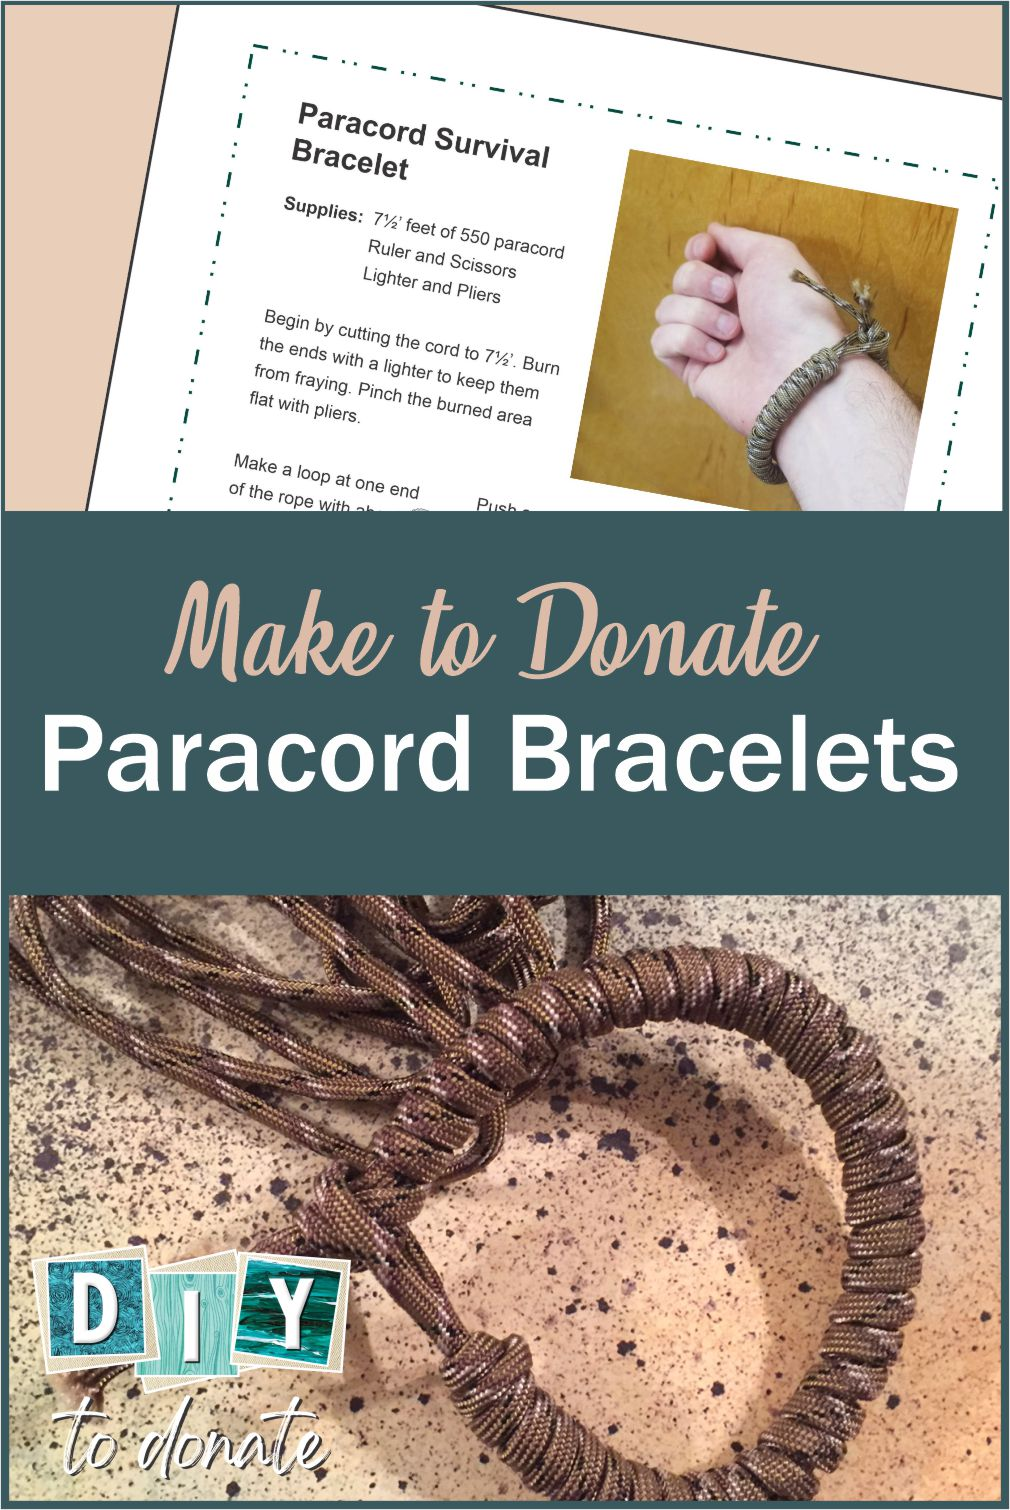 Make paracord bracelets and donate them to our troops. We have step-by-step illustrated instructions, a video and a pdf instruction sheet to make it easy. #diytodonate #diy #donate #troops #supportourtroops #crafts